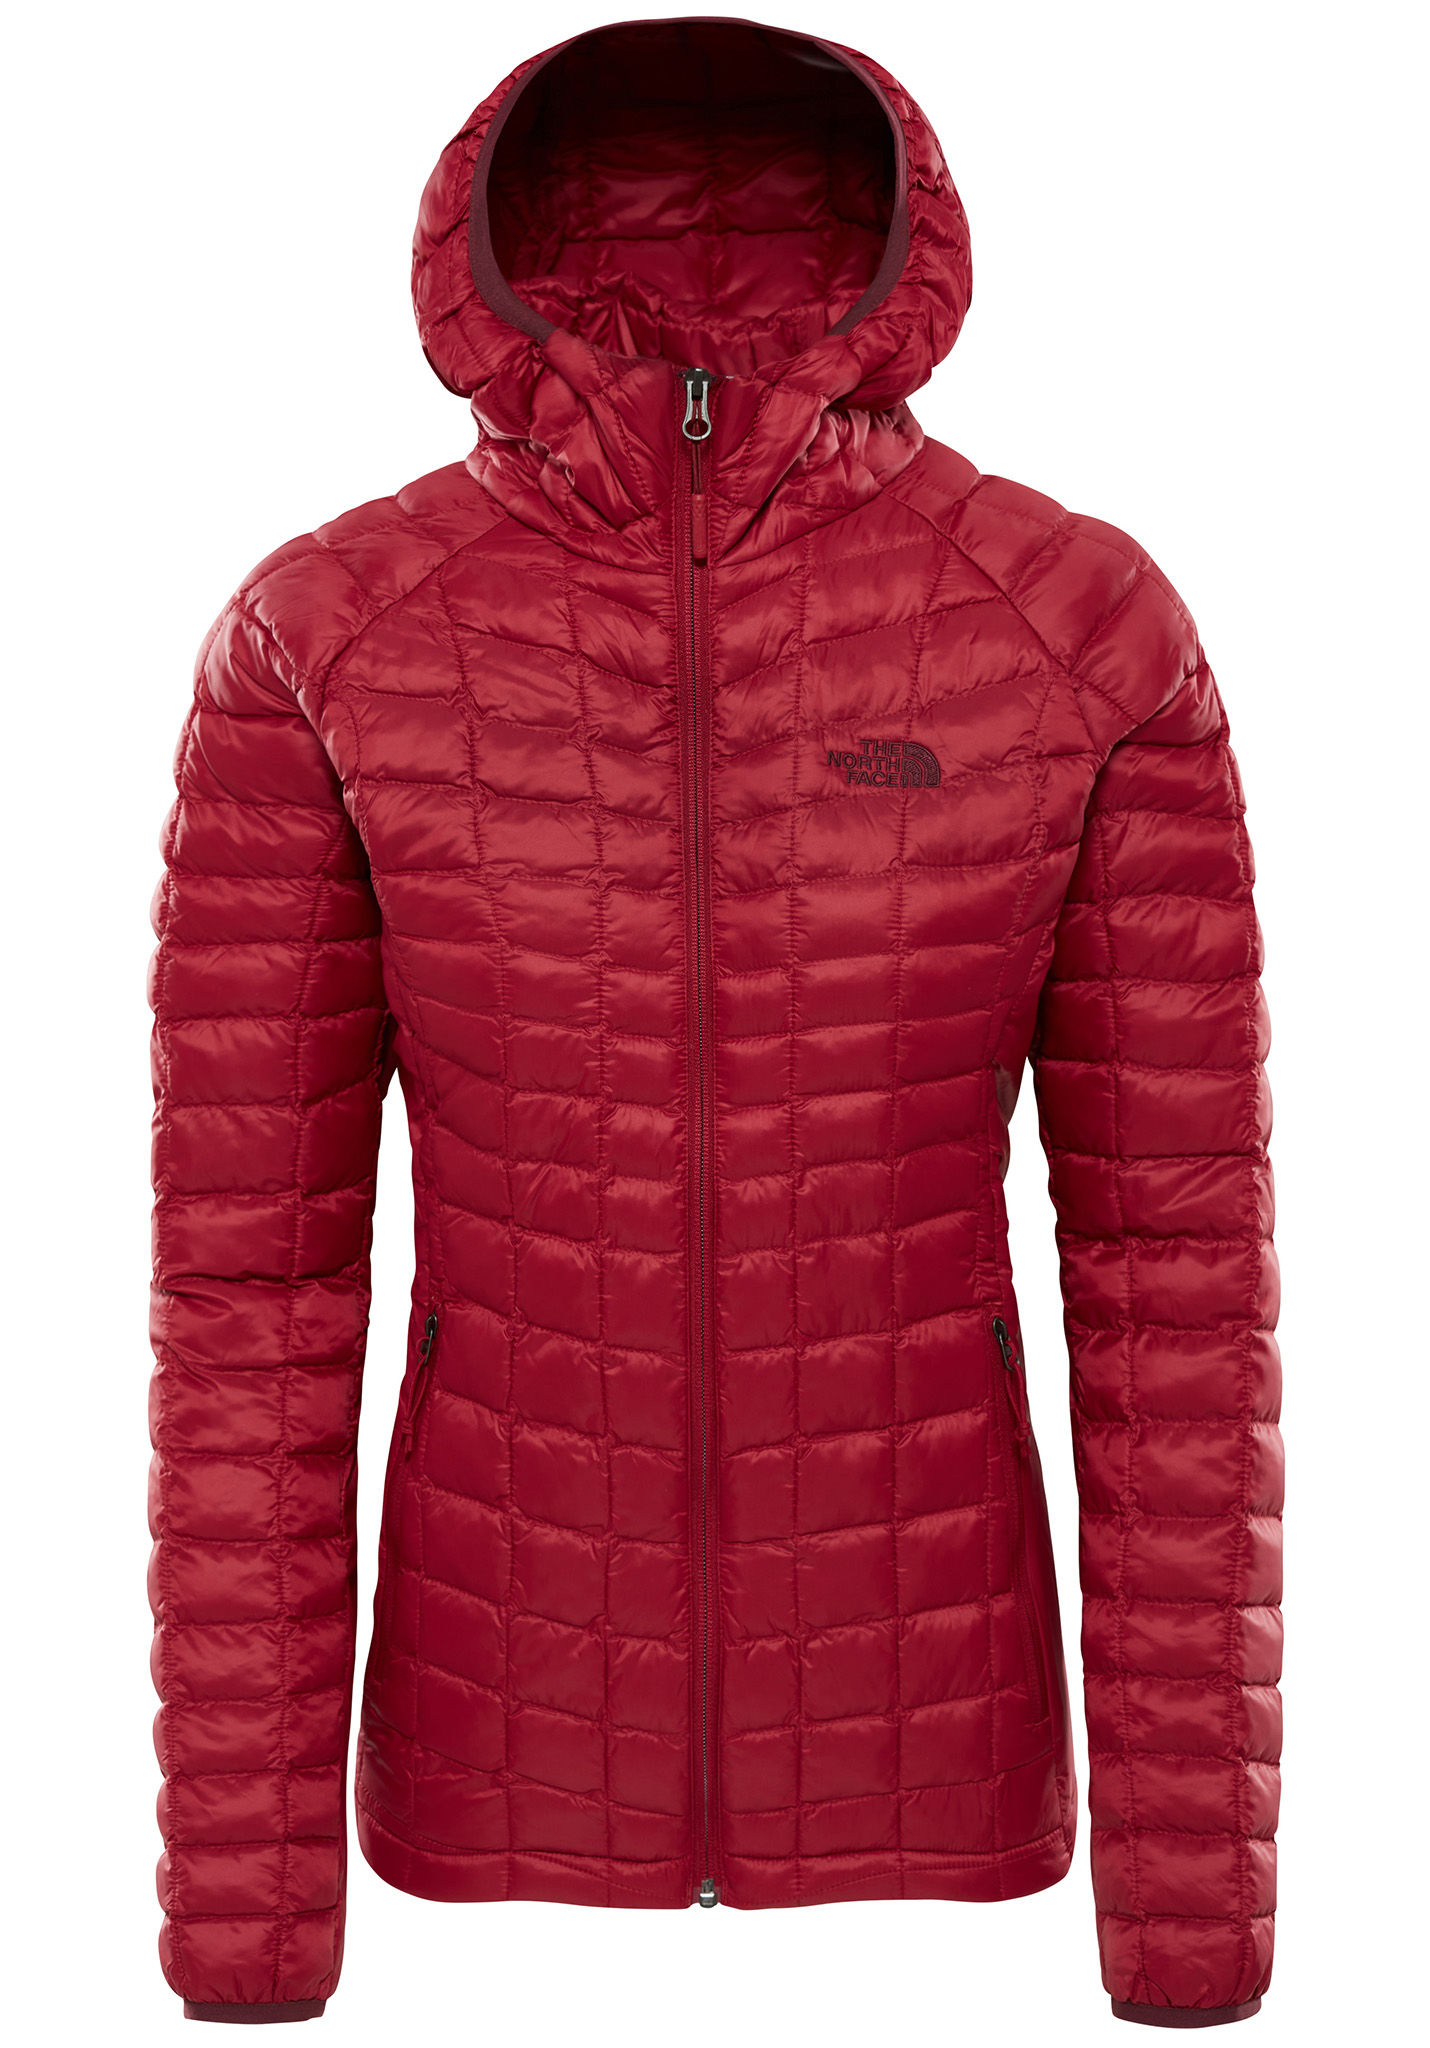 27b4676f7 THE NORTH FACE Thermoball Sport - Outdoor Jacket for Women - Red